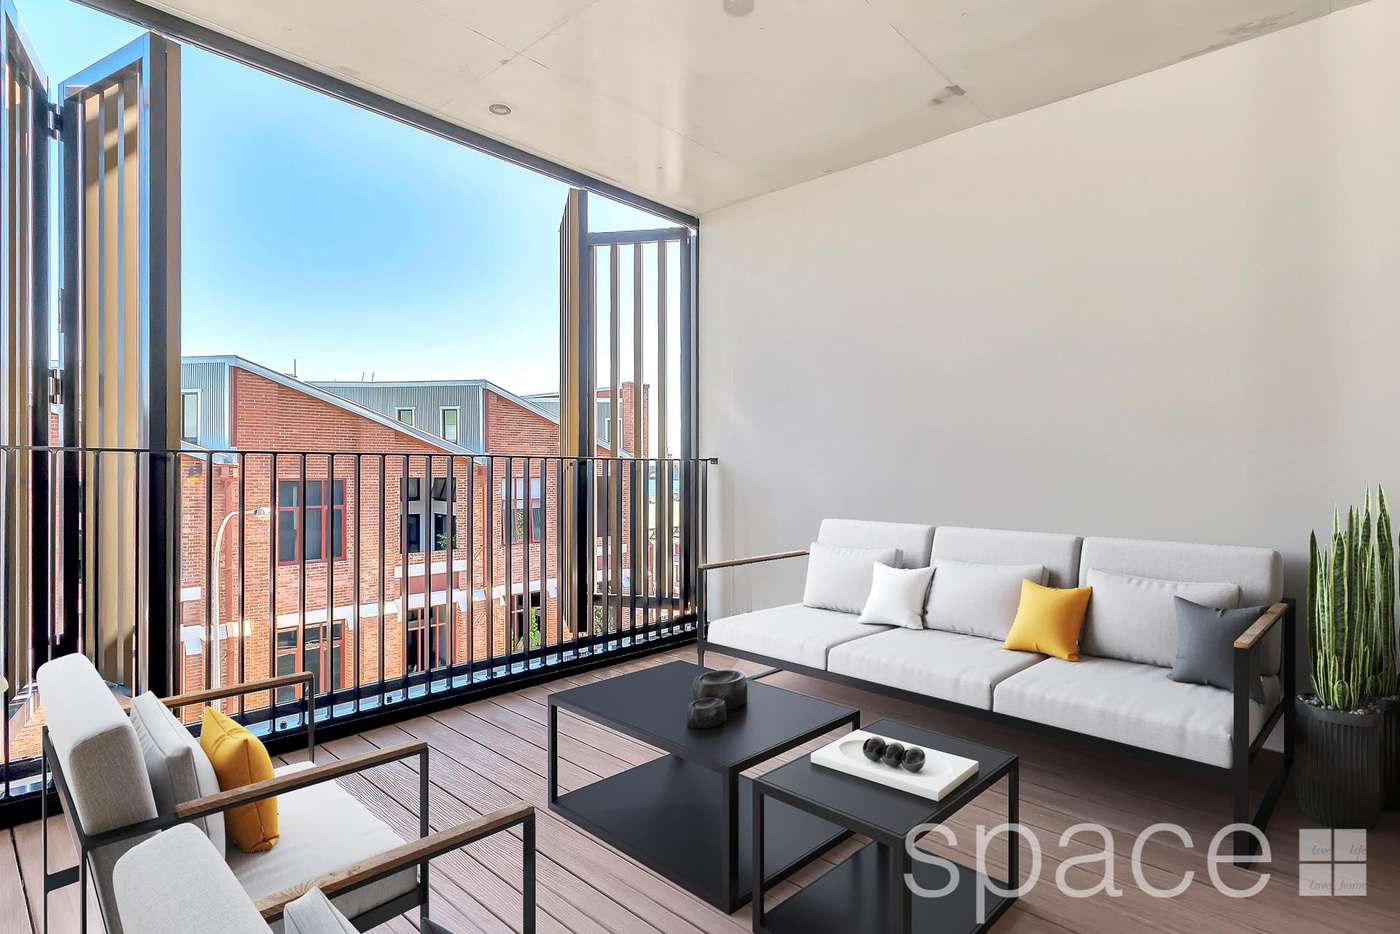 Main view of Homely apartment listing, 19/51 Queen Victoria Street, Fremantle WA 6160